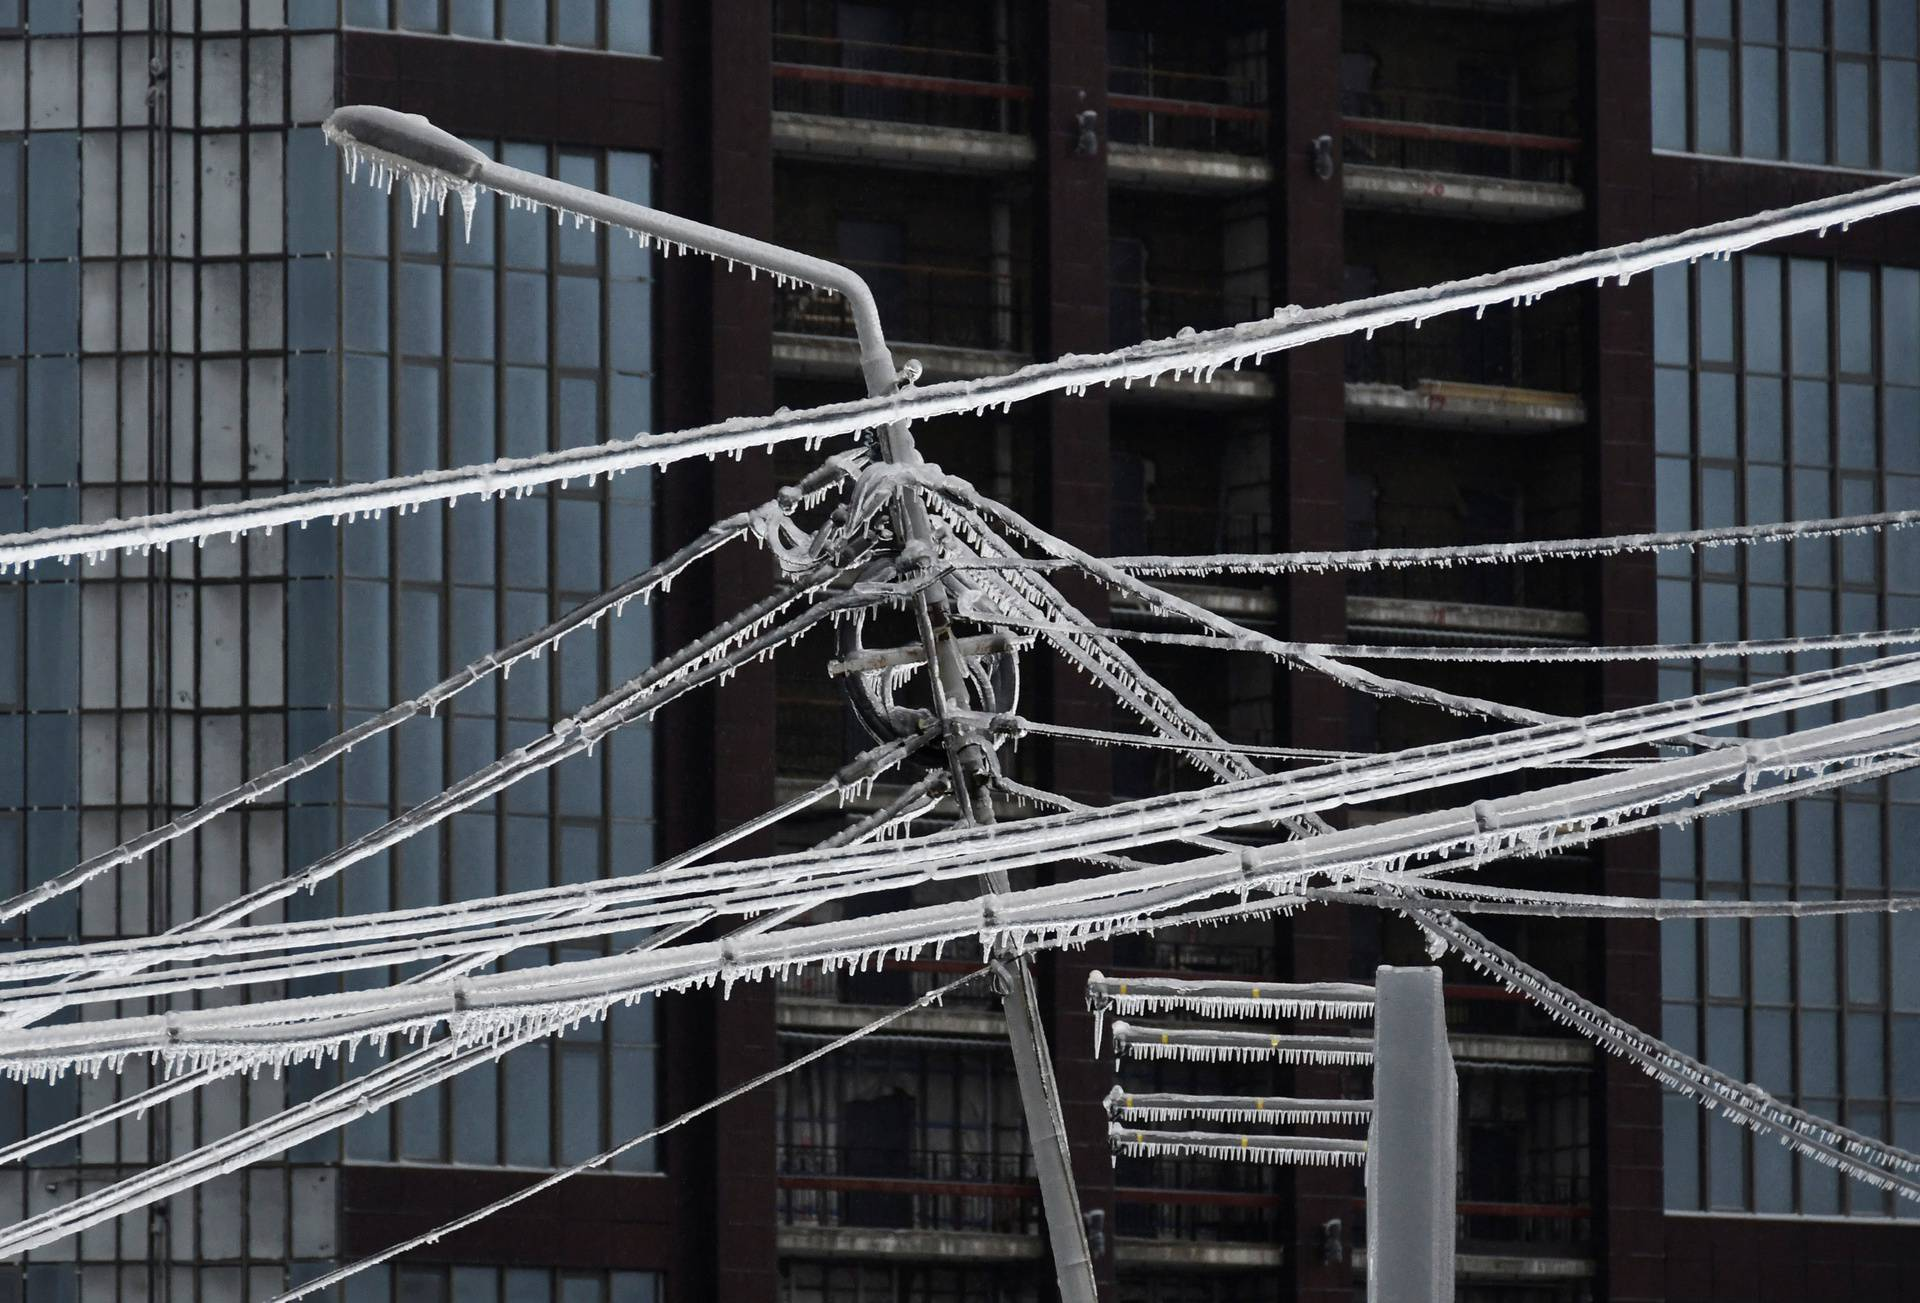 Ice-covered power lines and a light pole are pictured after freezing rain in Vladivostok